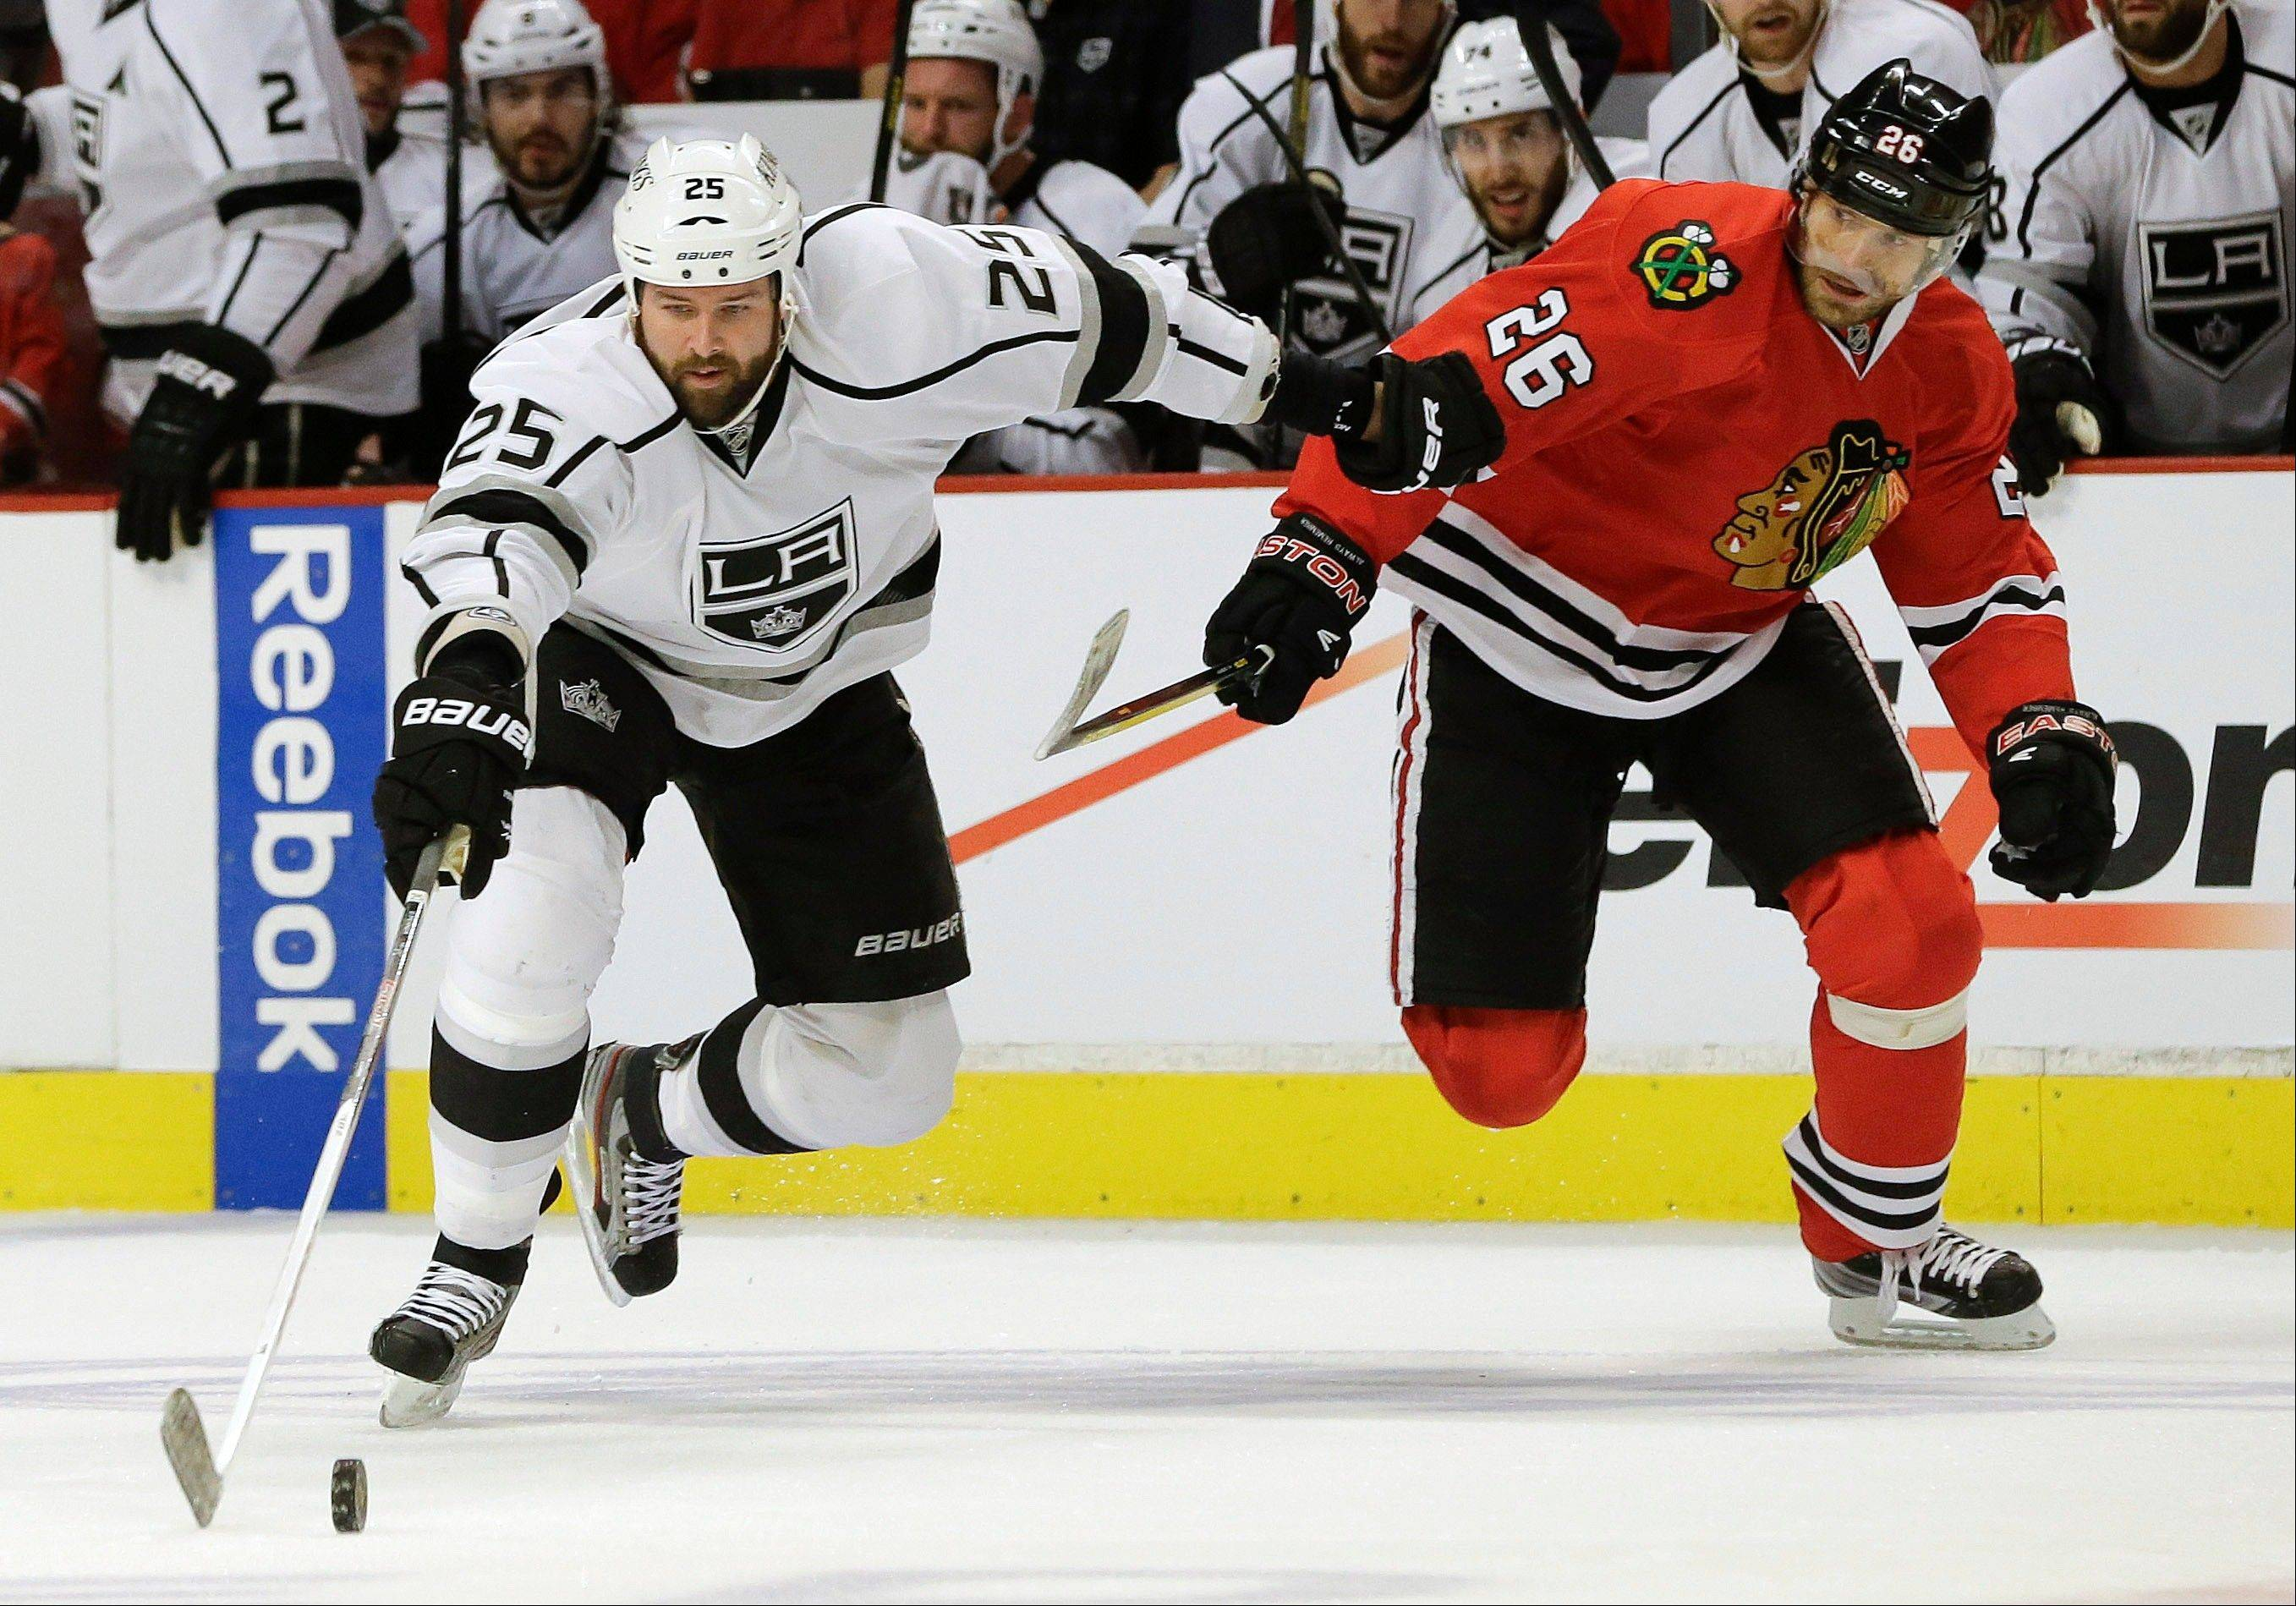 Blackhawks center Michal Handzus, right, was 25 years old when he last played in a conference finals game. Now 36, he's playing a key role on the second line with the Blackhawks.